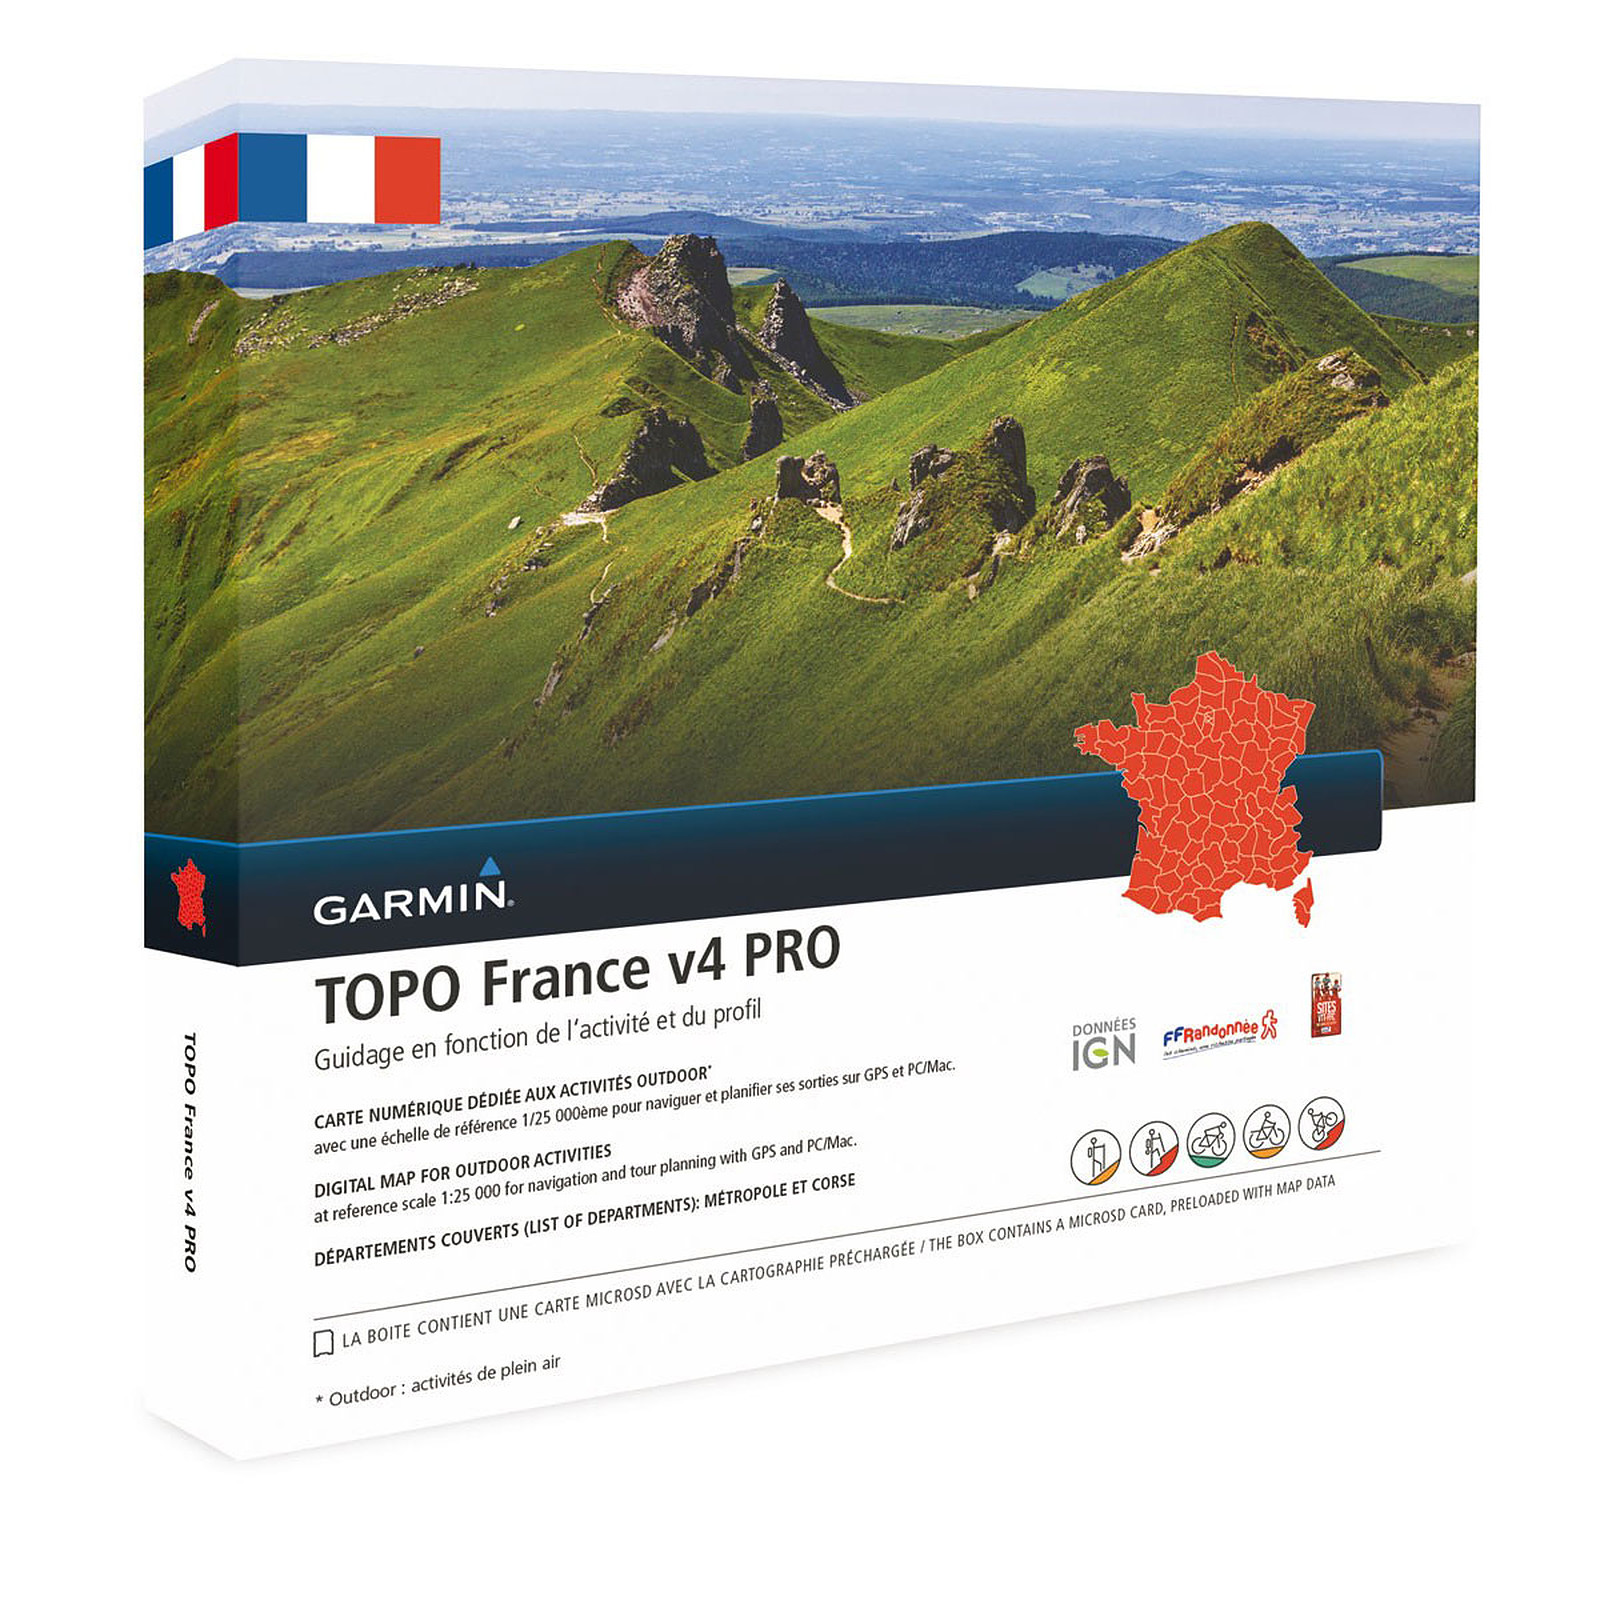 Garmin TOPO France v4 Pro - France